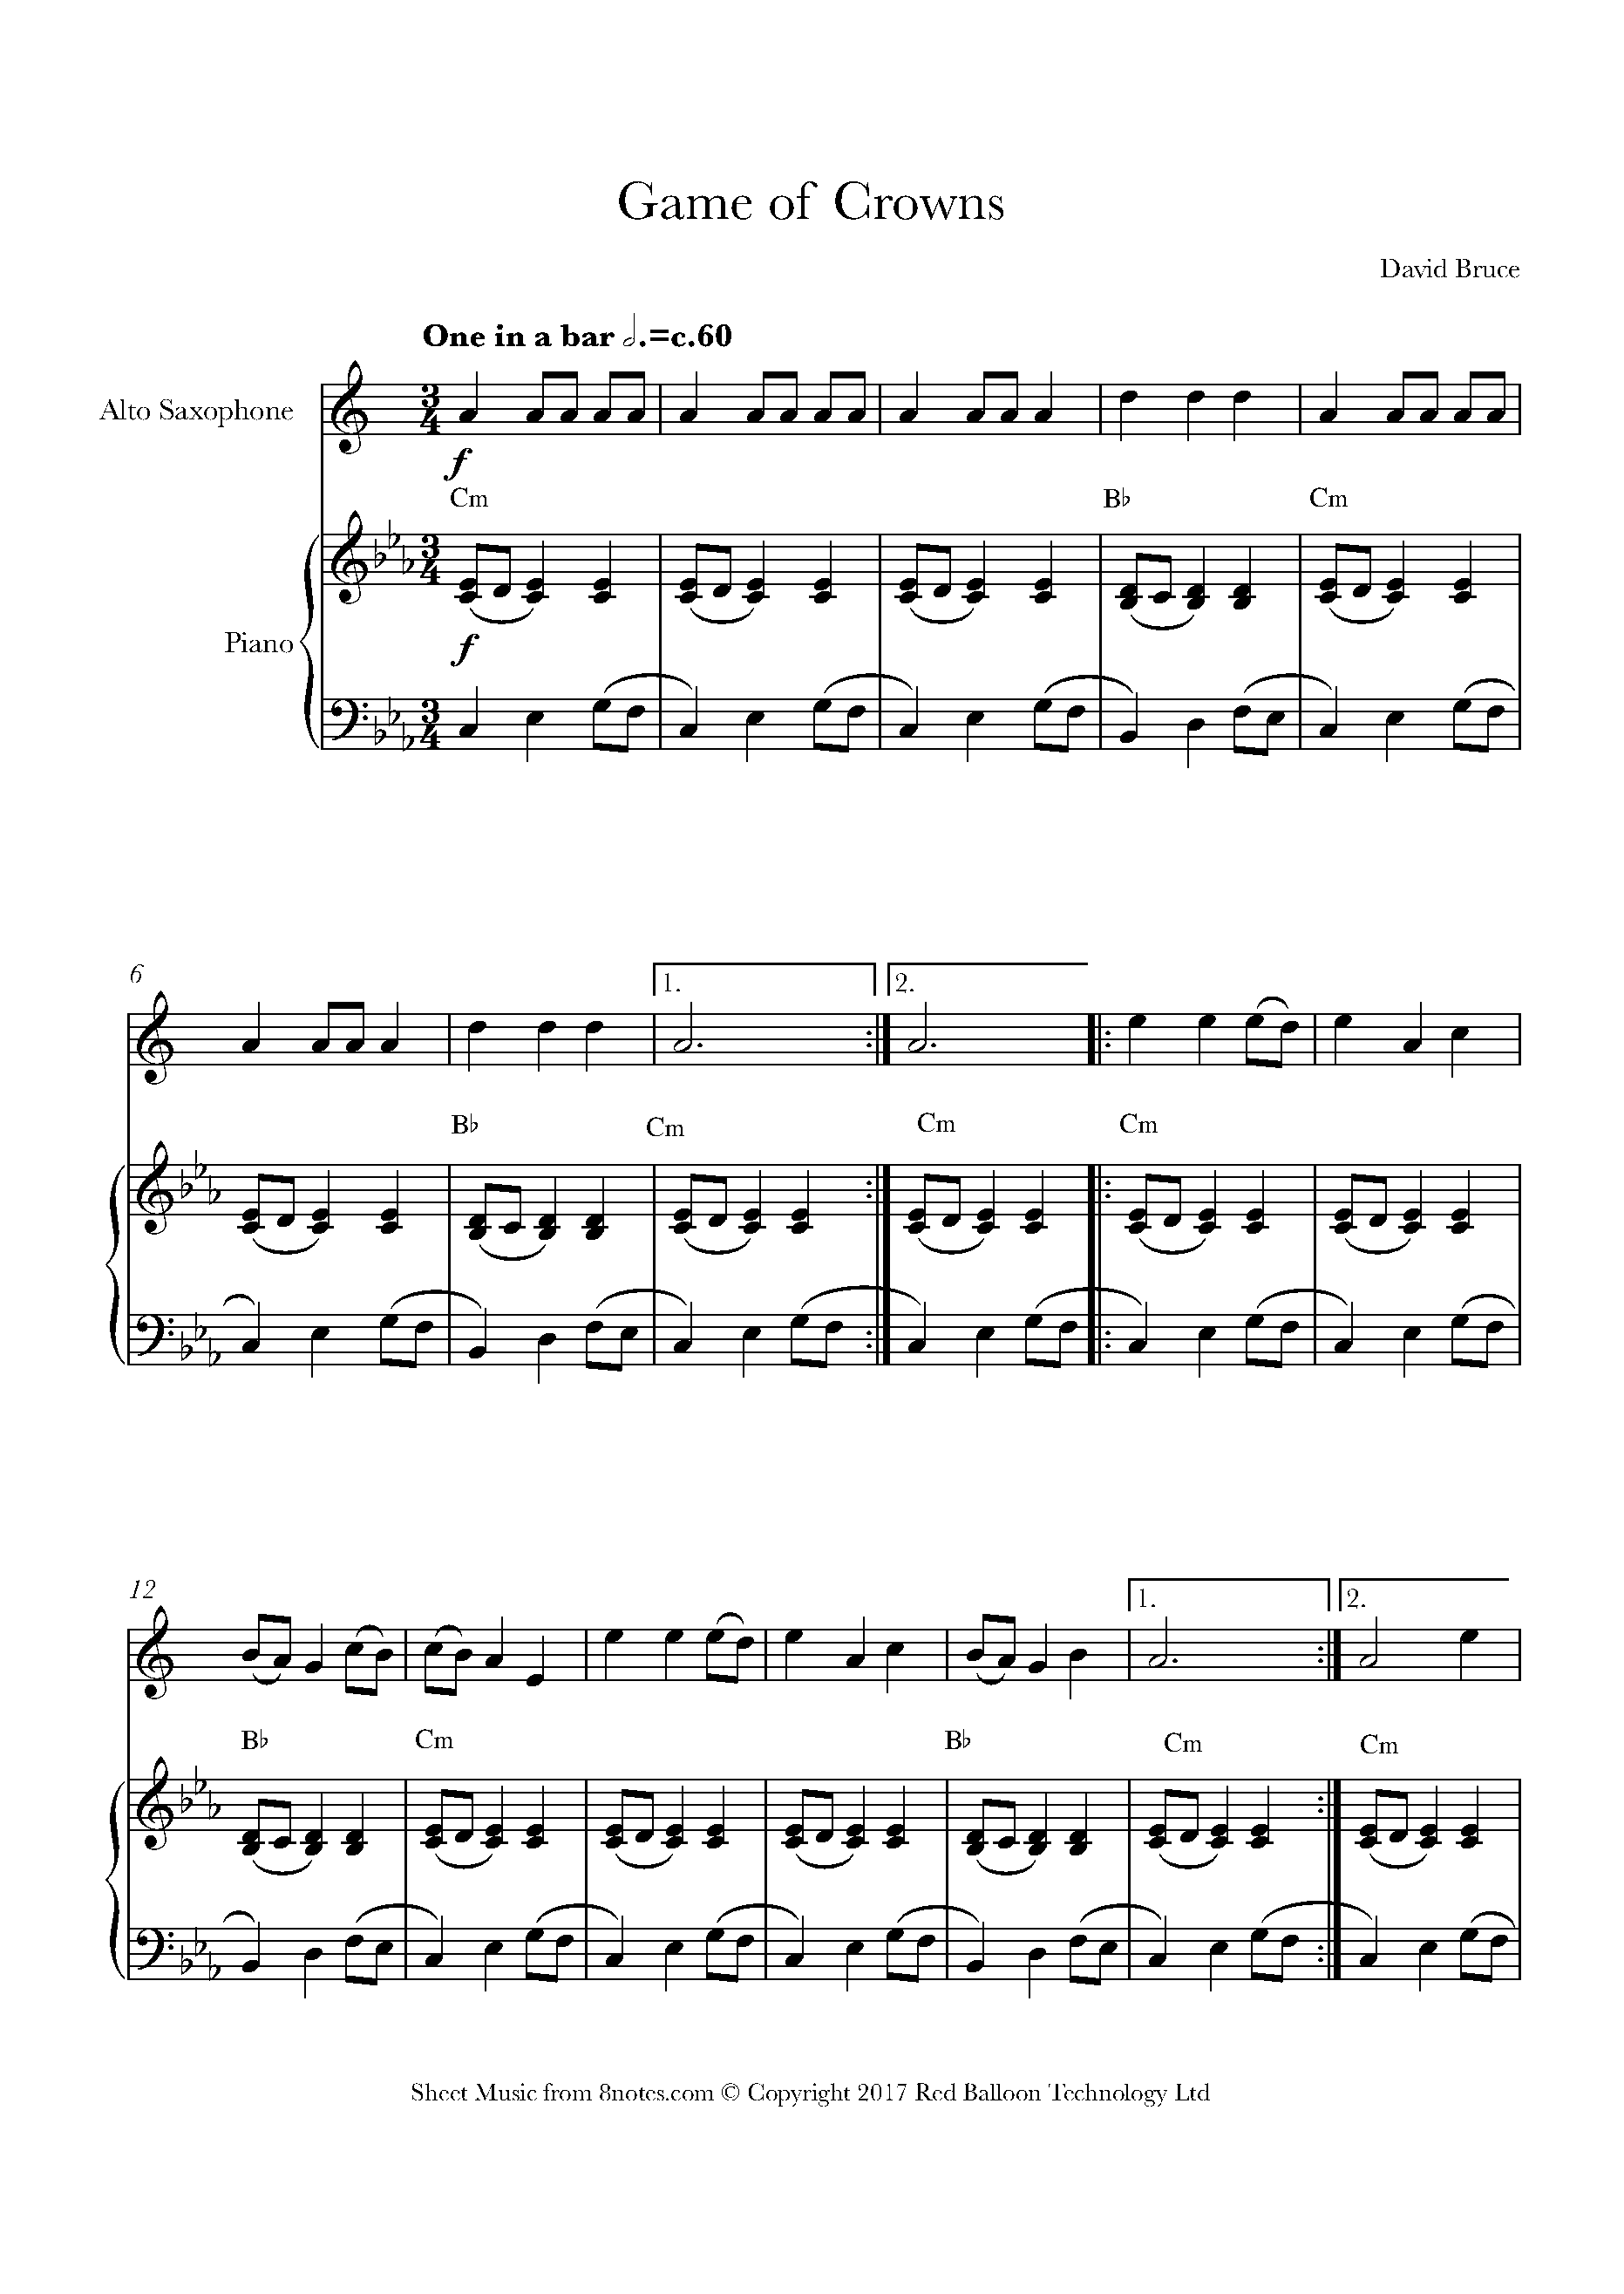 www 8notes com/school/png/saxophone/game_of_crowns